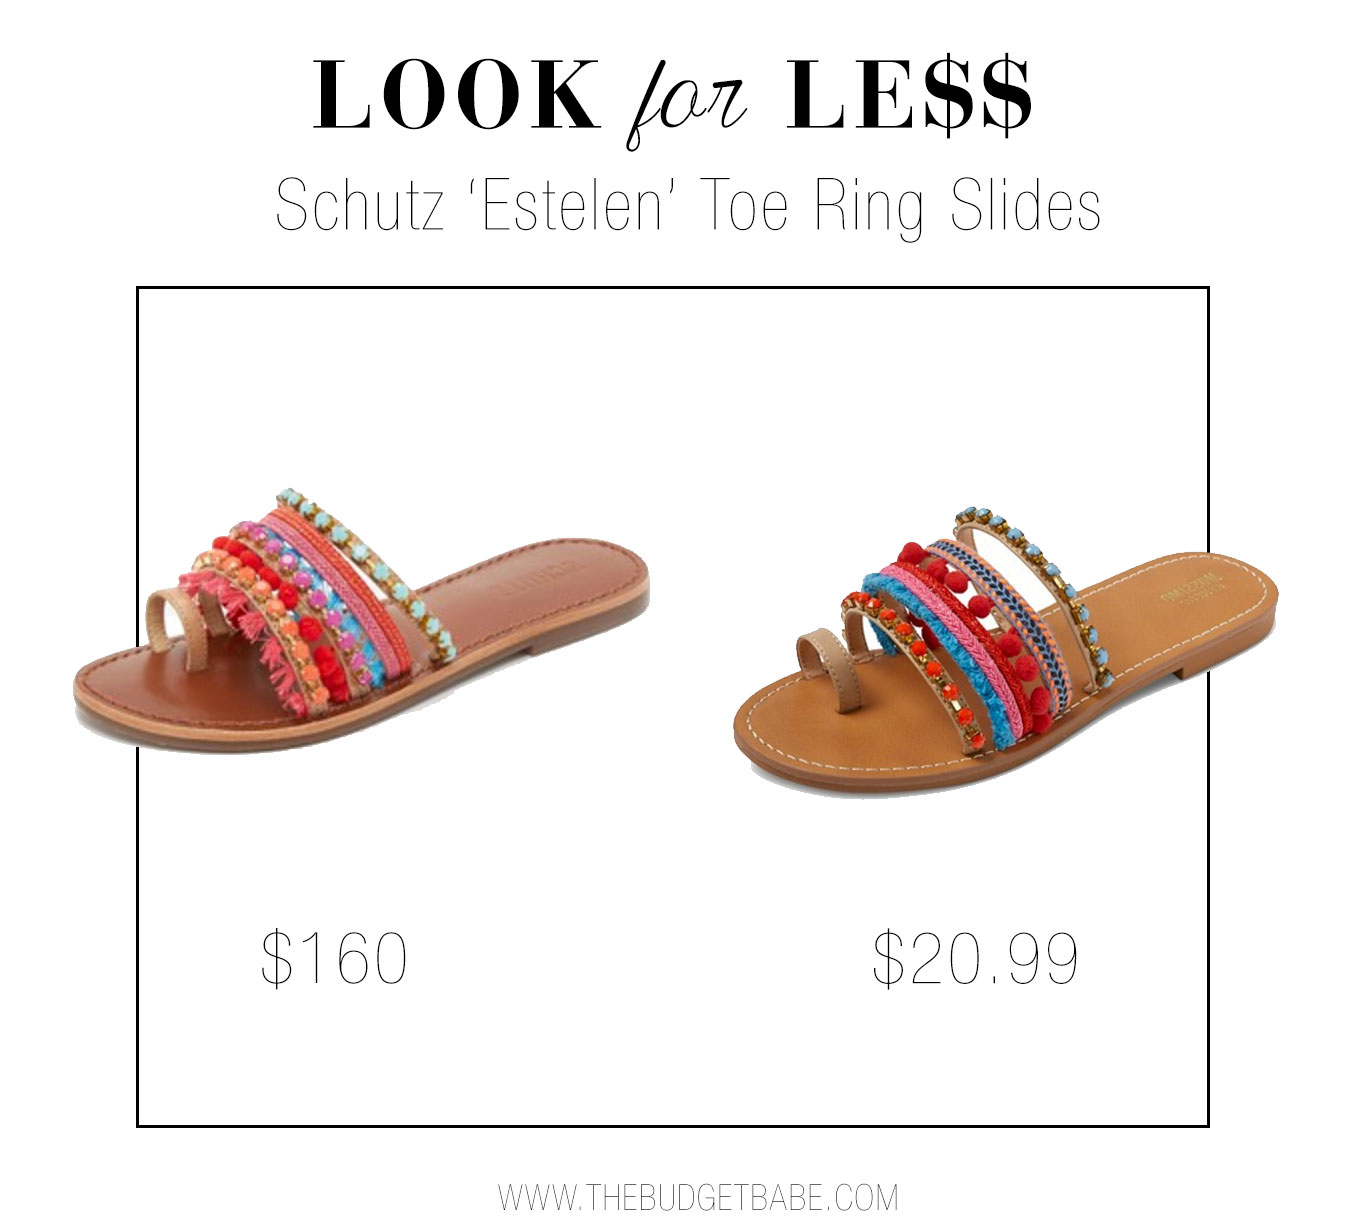 Get the look of Schutz's boho slide sandal for a fraction of the cost.